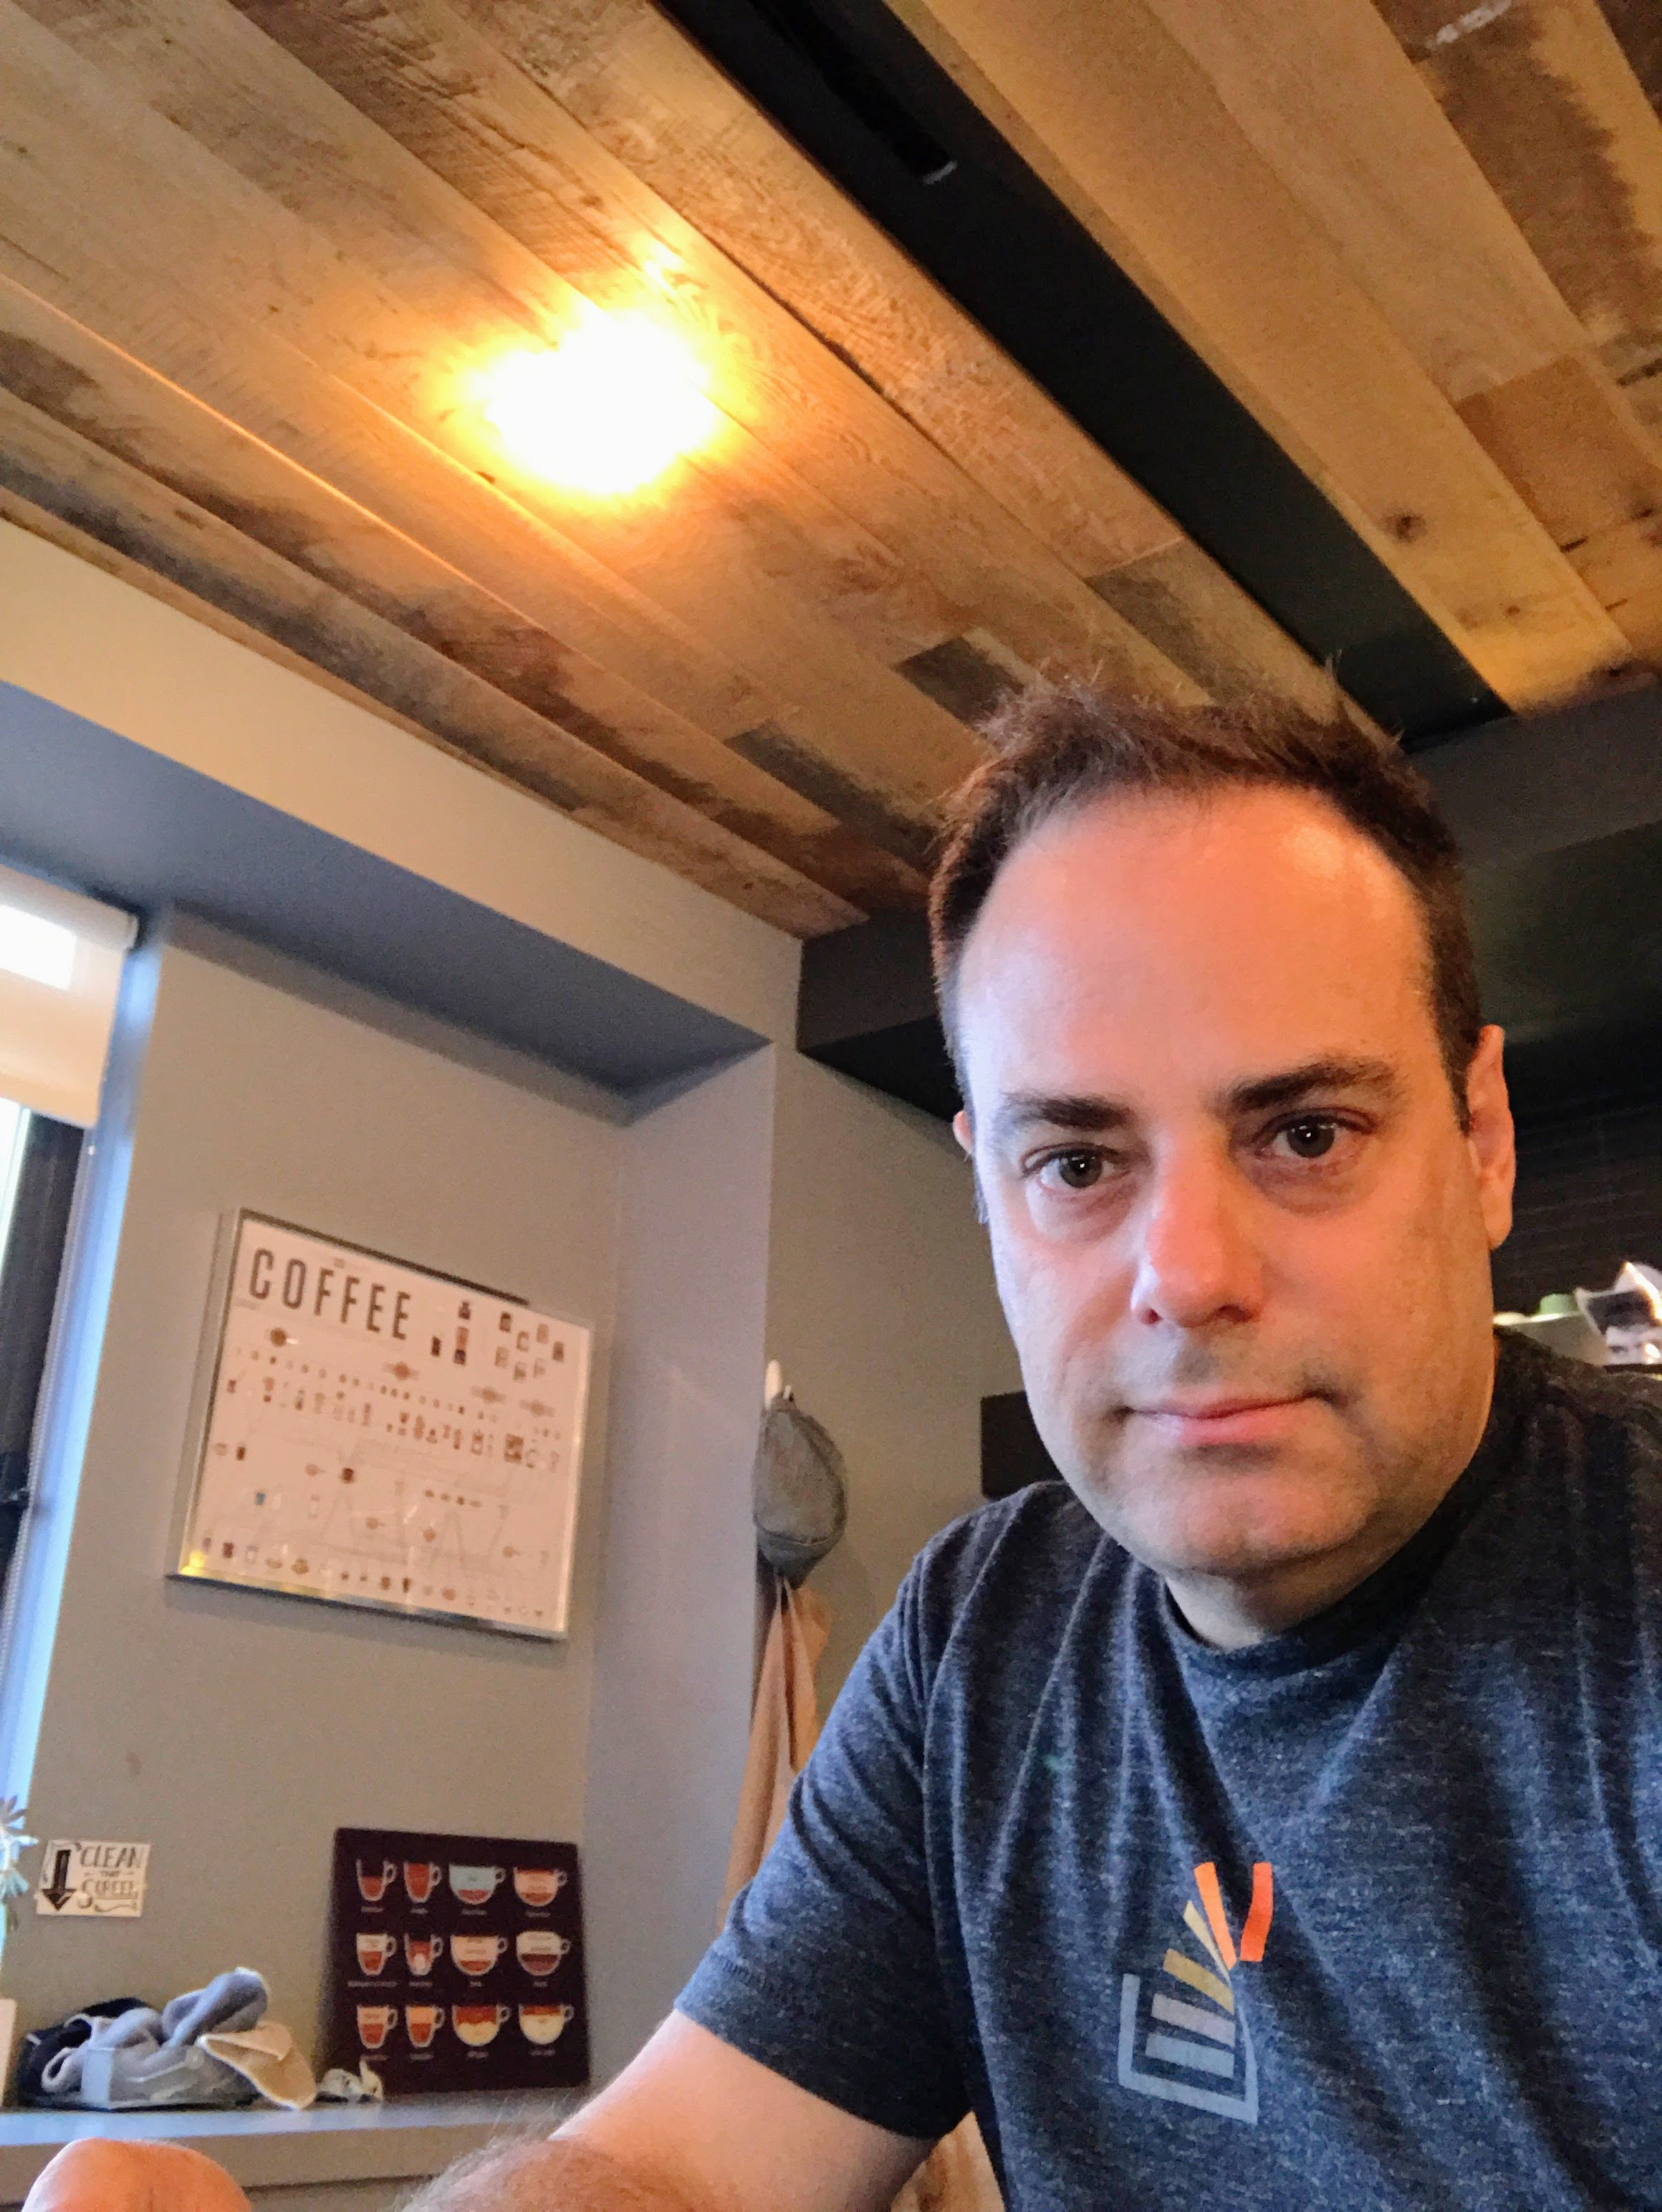 Joel Spolsky CEO (and co-founder) of Stack Overflow, and co-founder of Fog Creek Software (creator FogBugz,Trello, Glitch, and Manuscript).